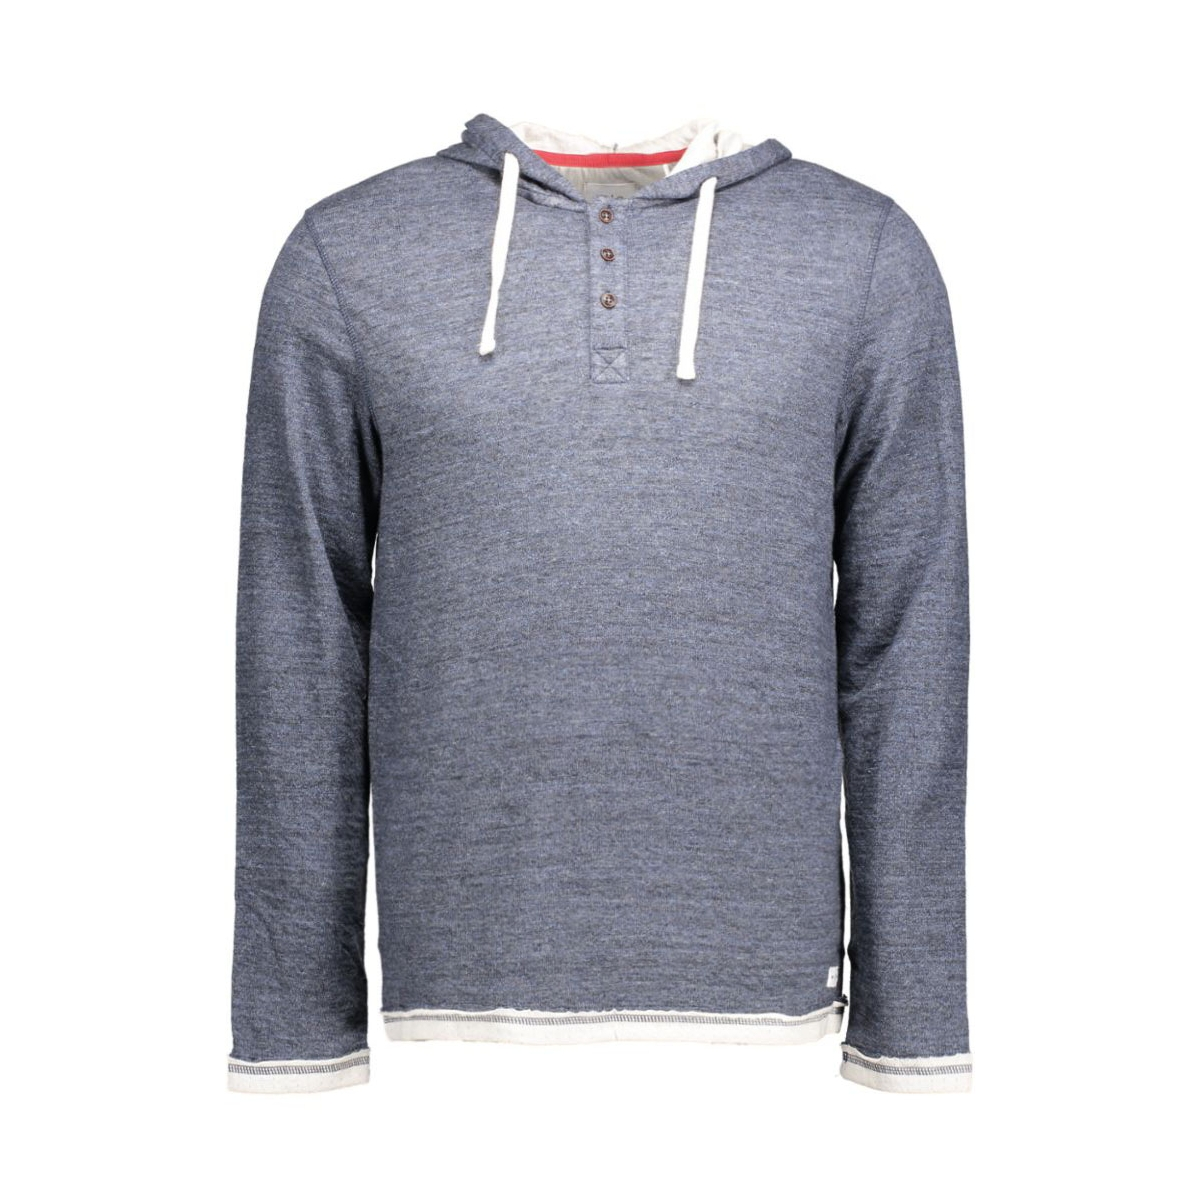 096cc2k005 edc sweater c400